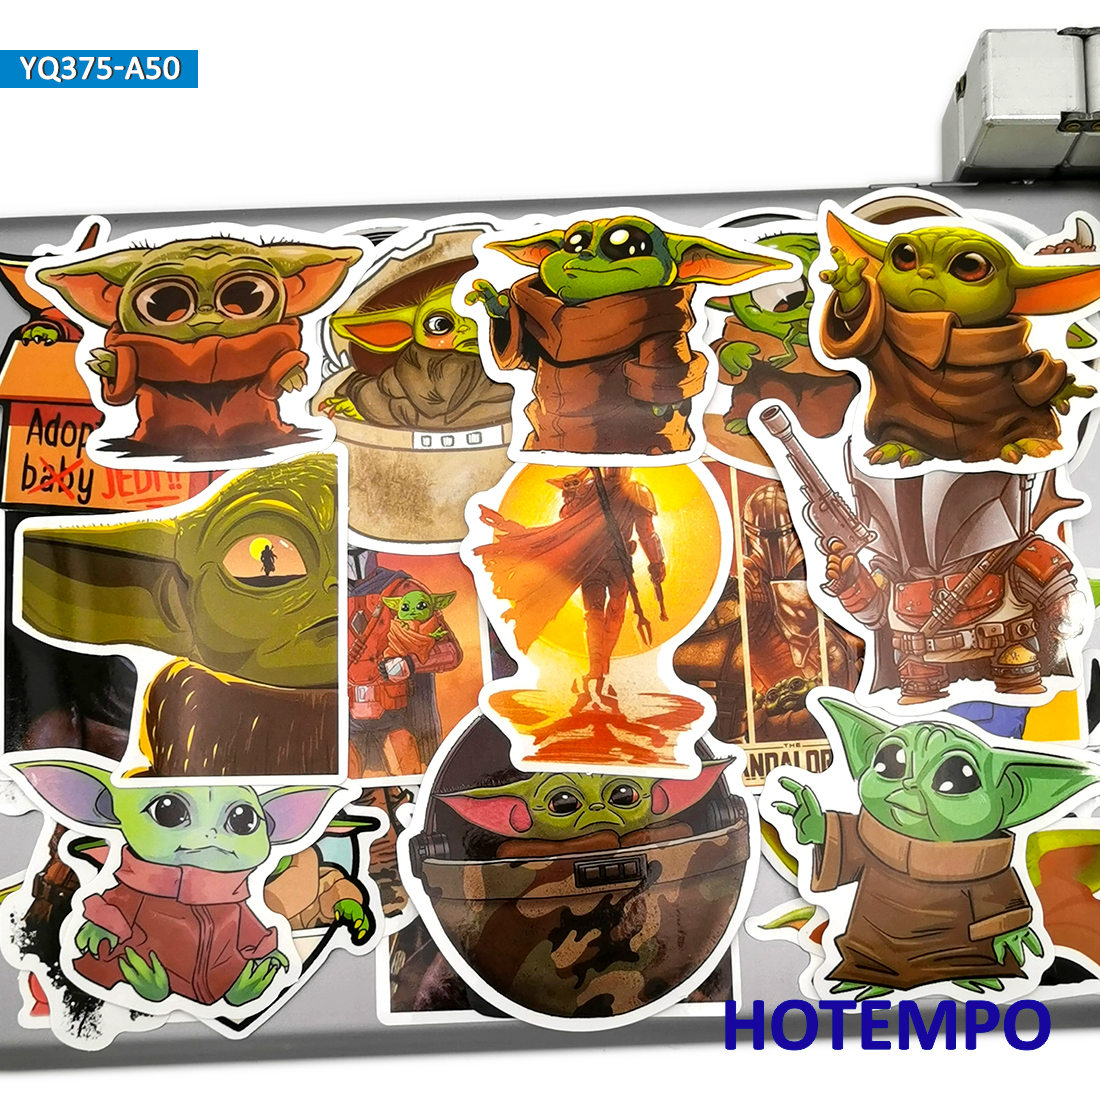 50pcs Alien Baby ET Cartoon Style Stickers Toys for Kids Mobile Phone Laptop Luggage Skateboard Pad Case Car Anime Decal Sticker(China)